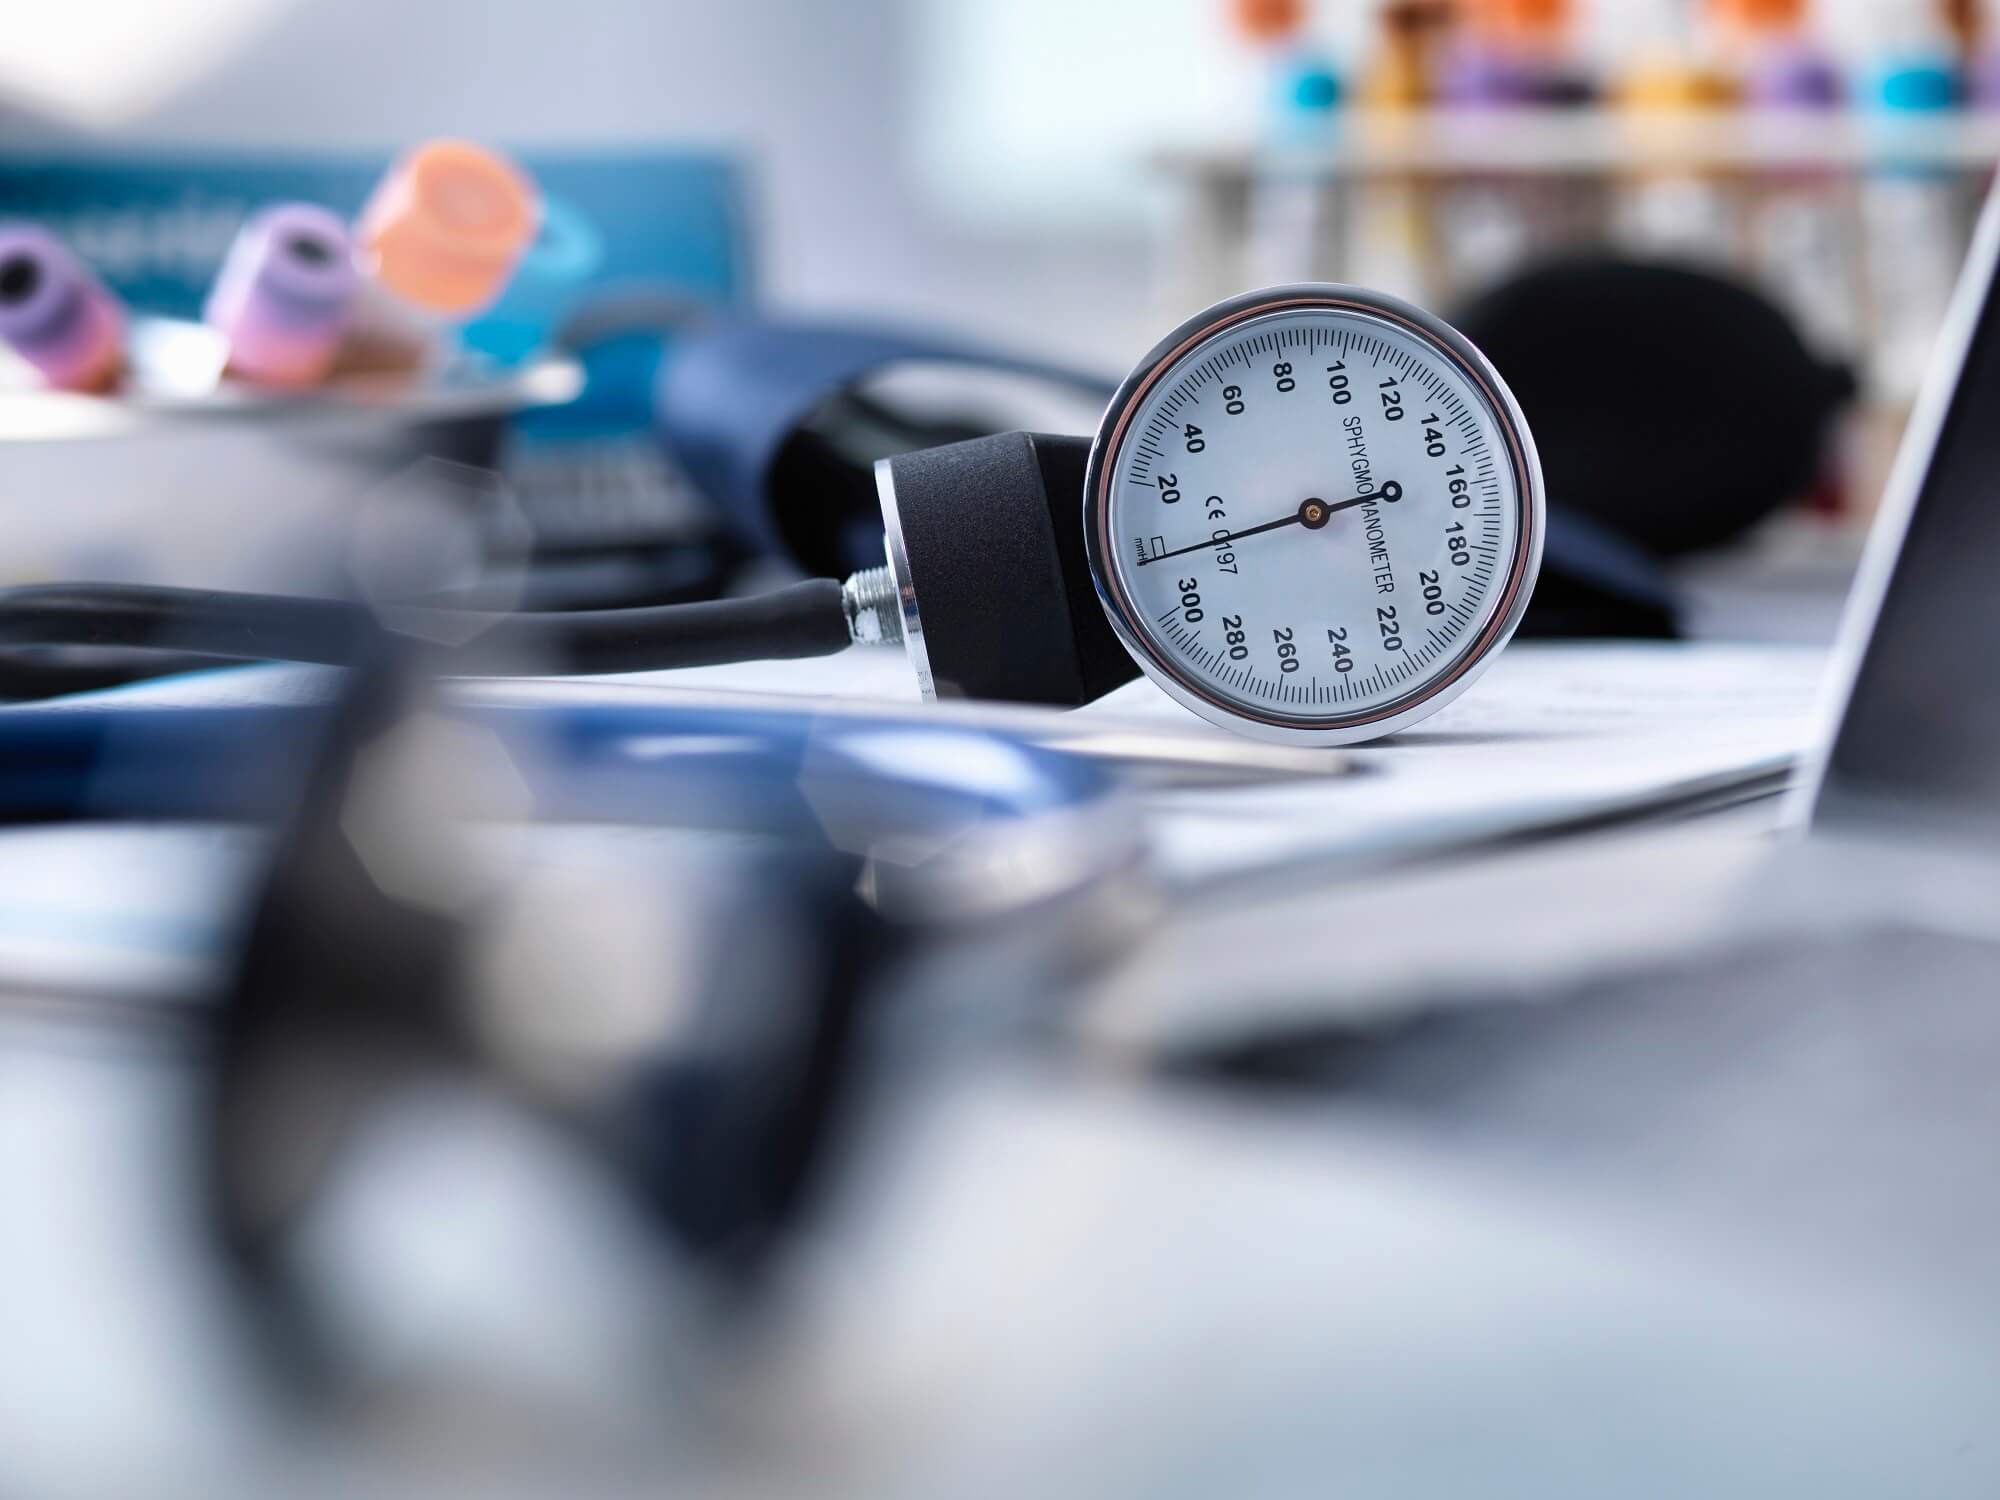 With intensive BP control, significant reductions were seen in the risk for mild cognitive impairment.